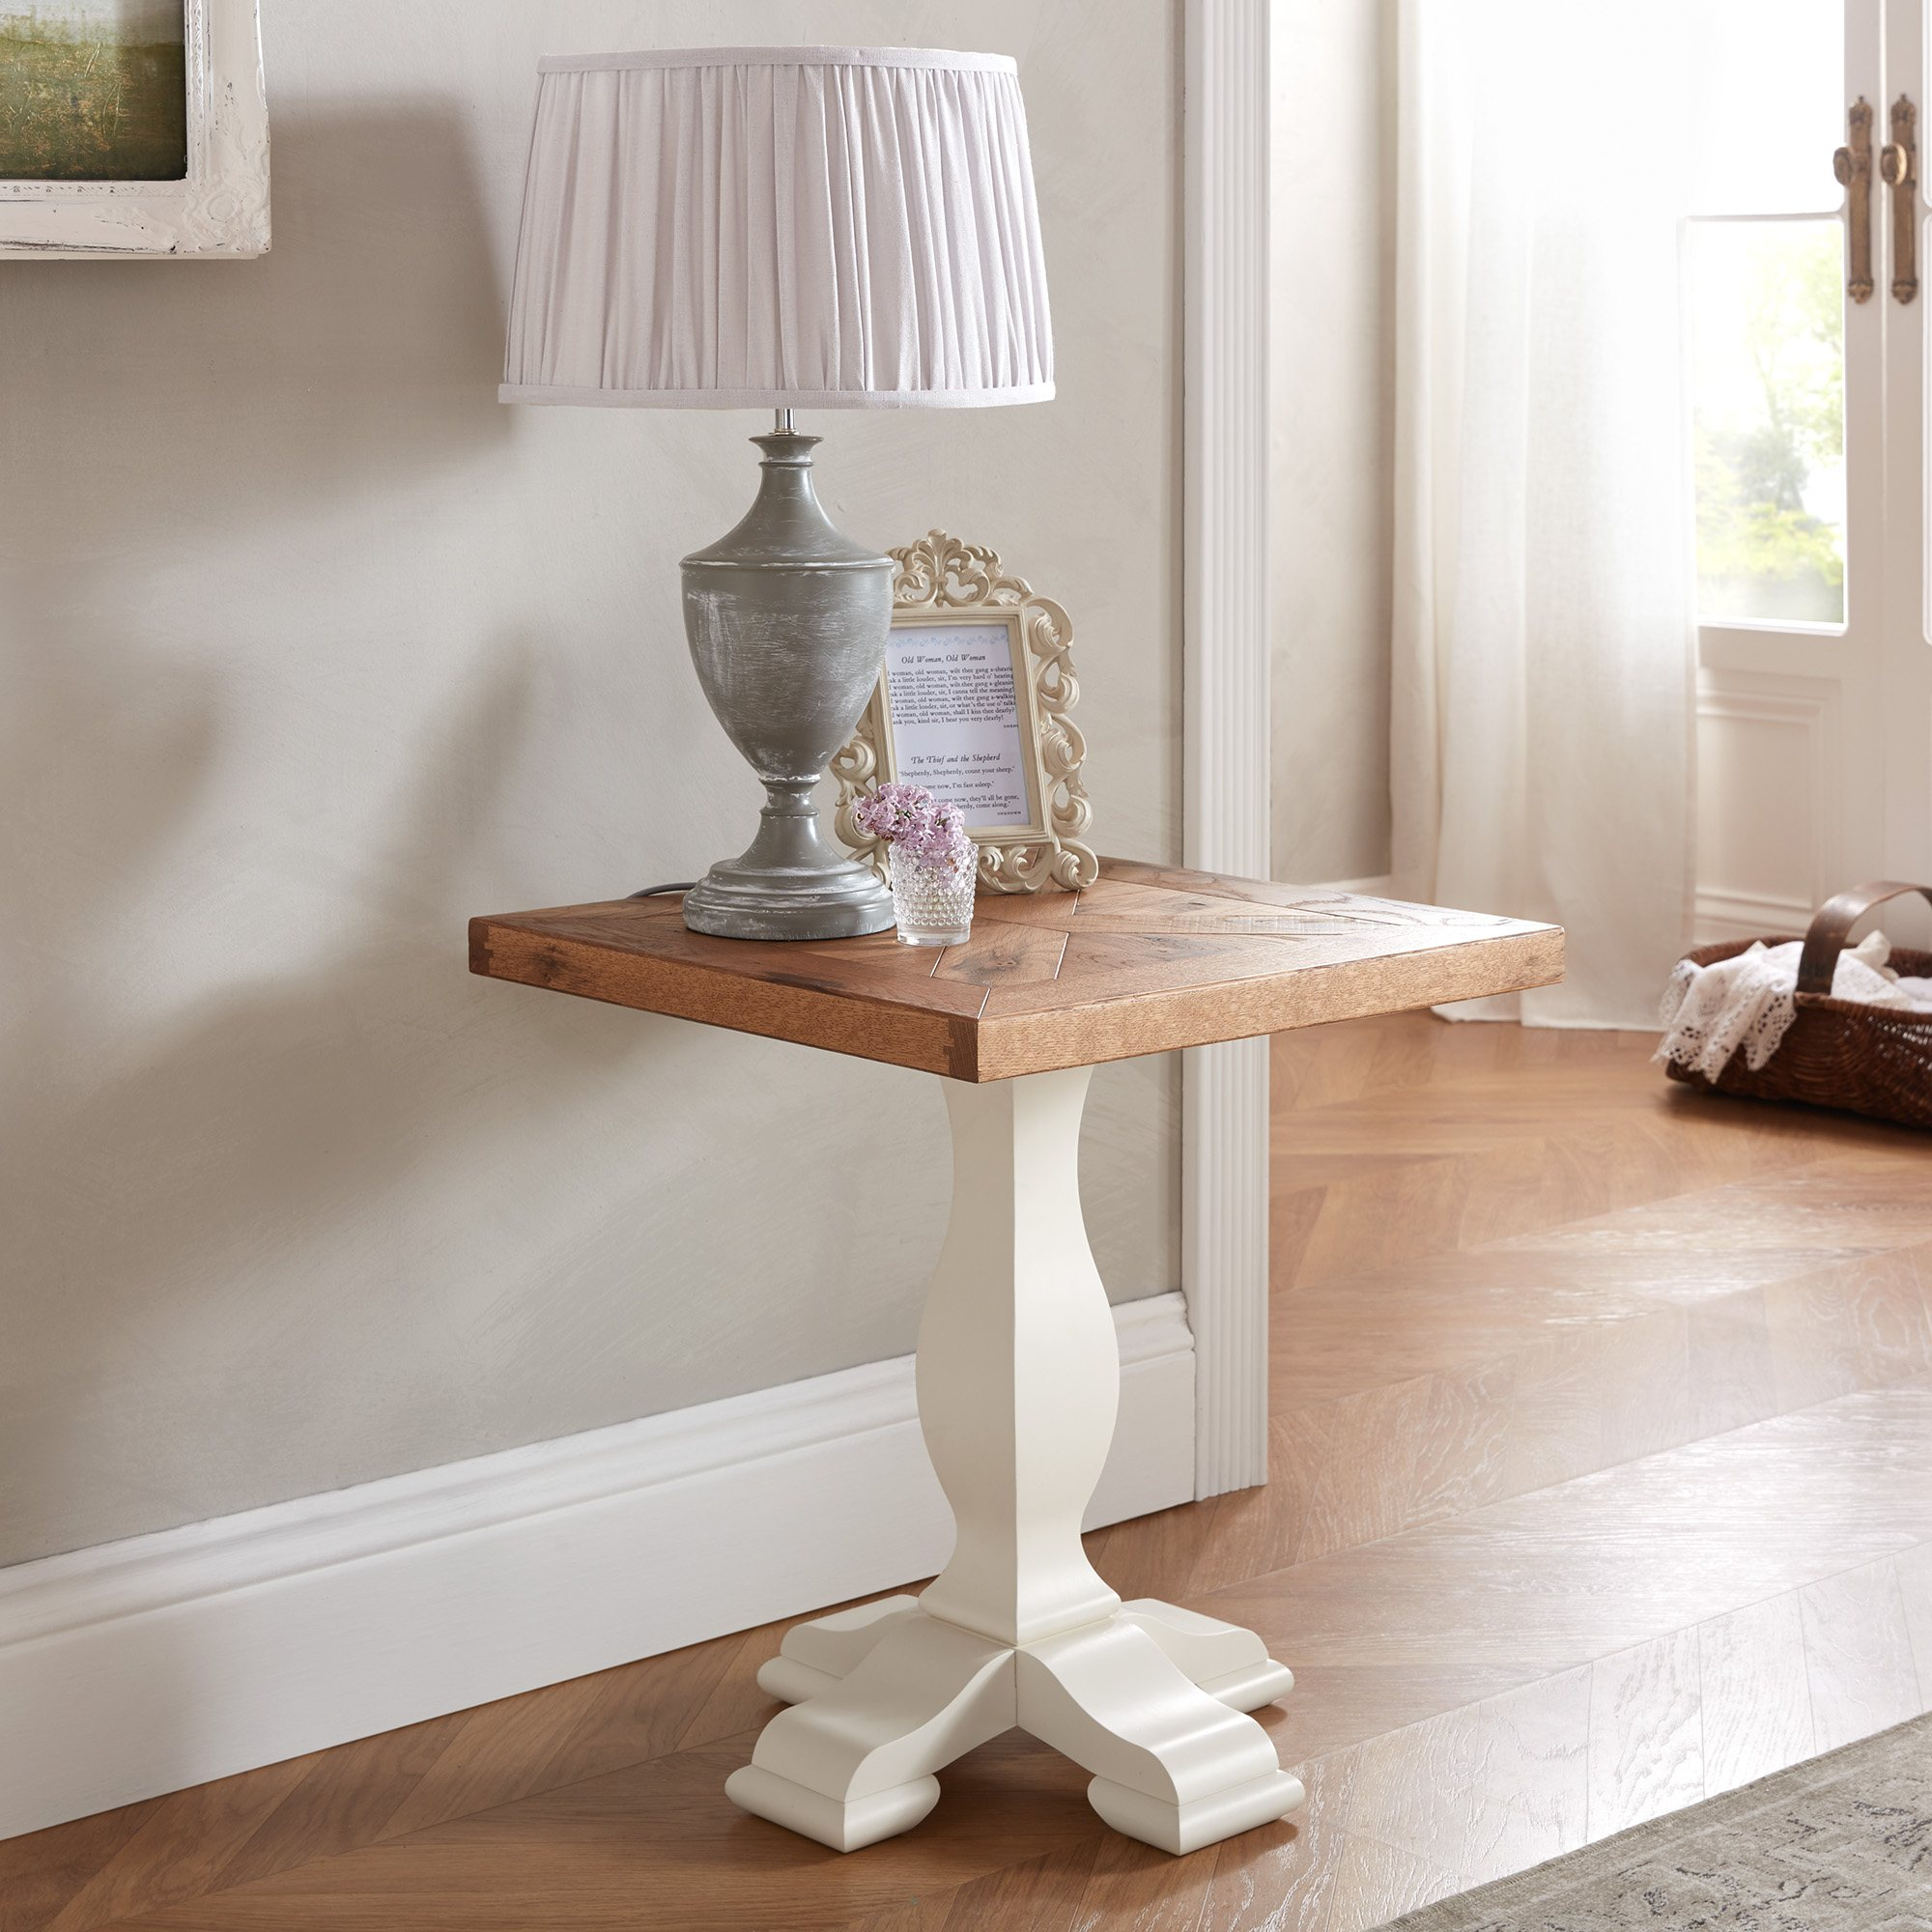 HIGHLAND LAMP TABLE